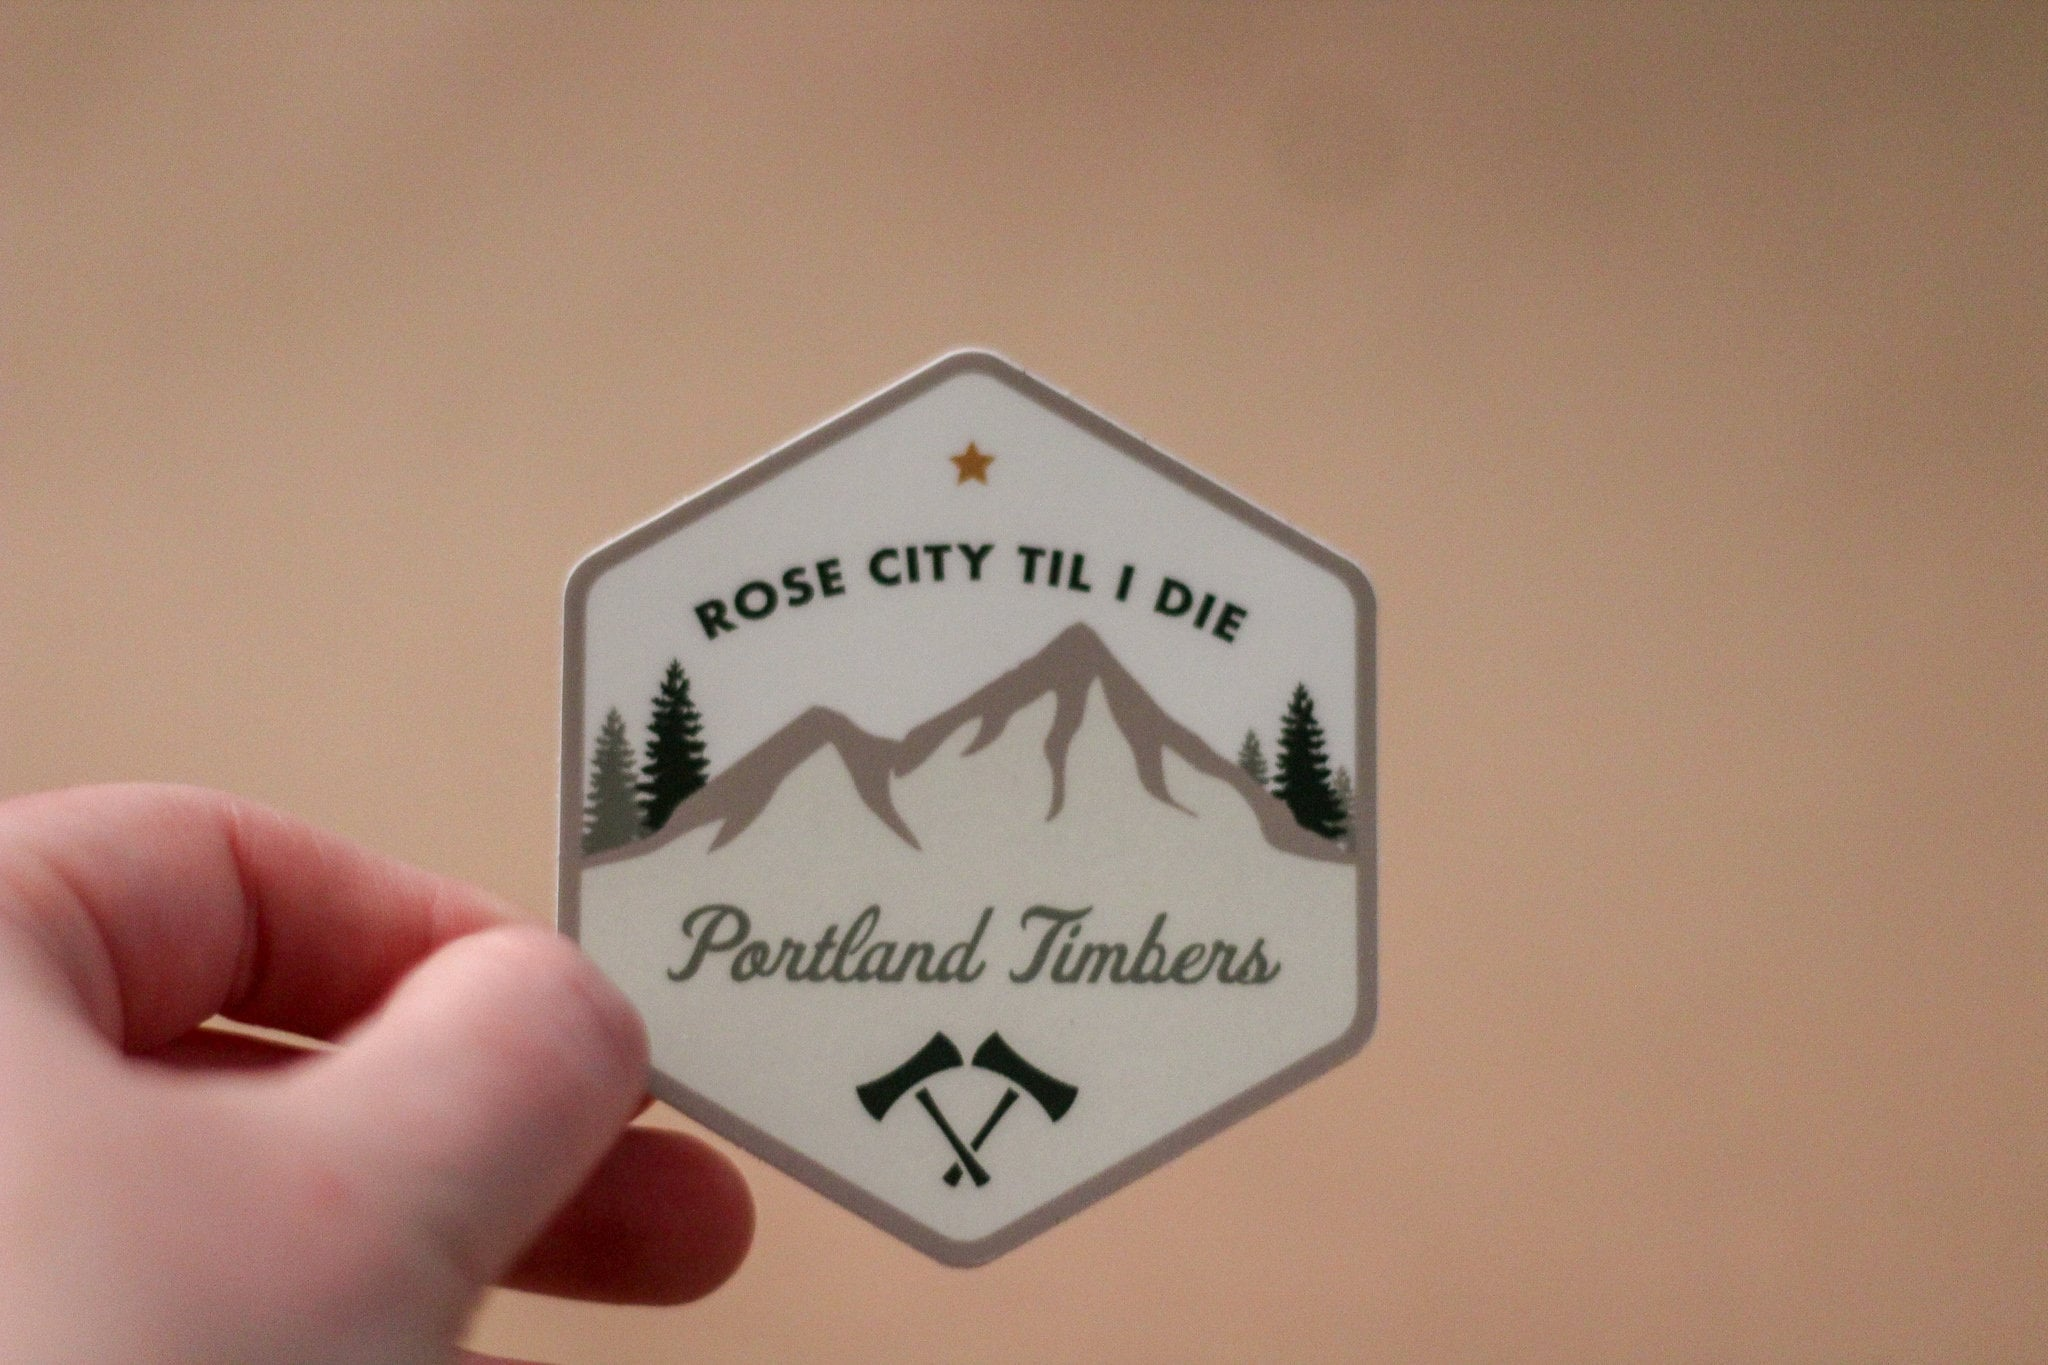 Portland timbers stickers mls timbers portland oregon soccer vinyl stickers rose city till i die rose city green and gold